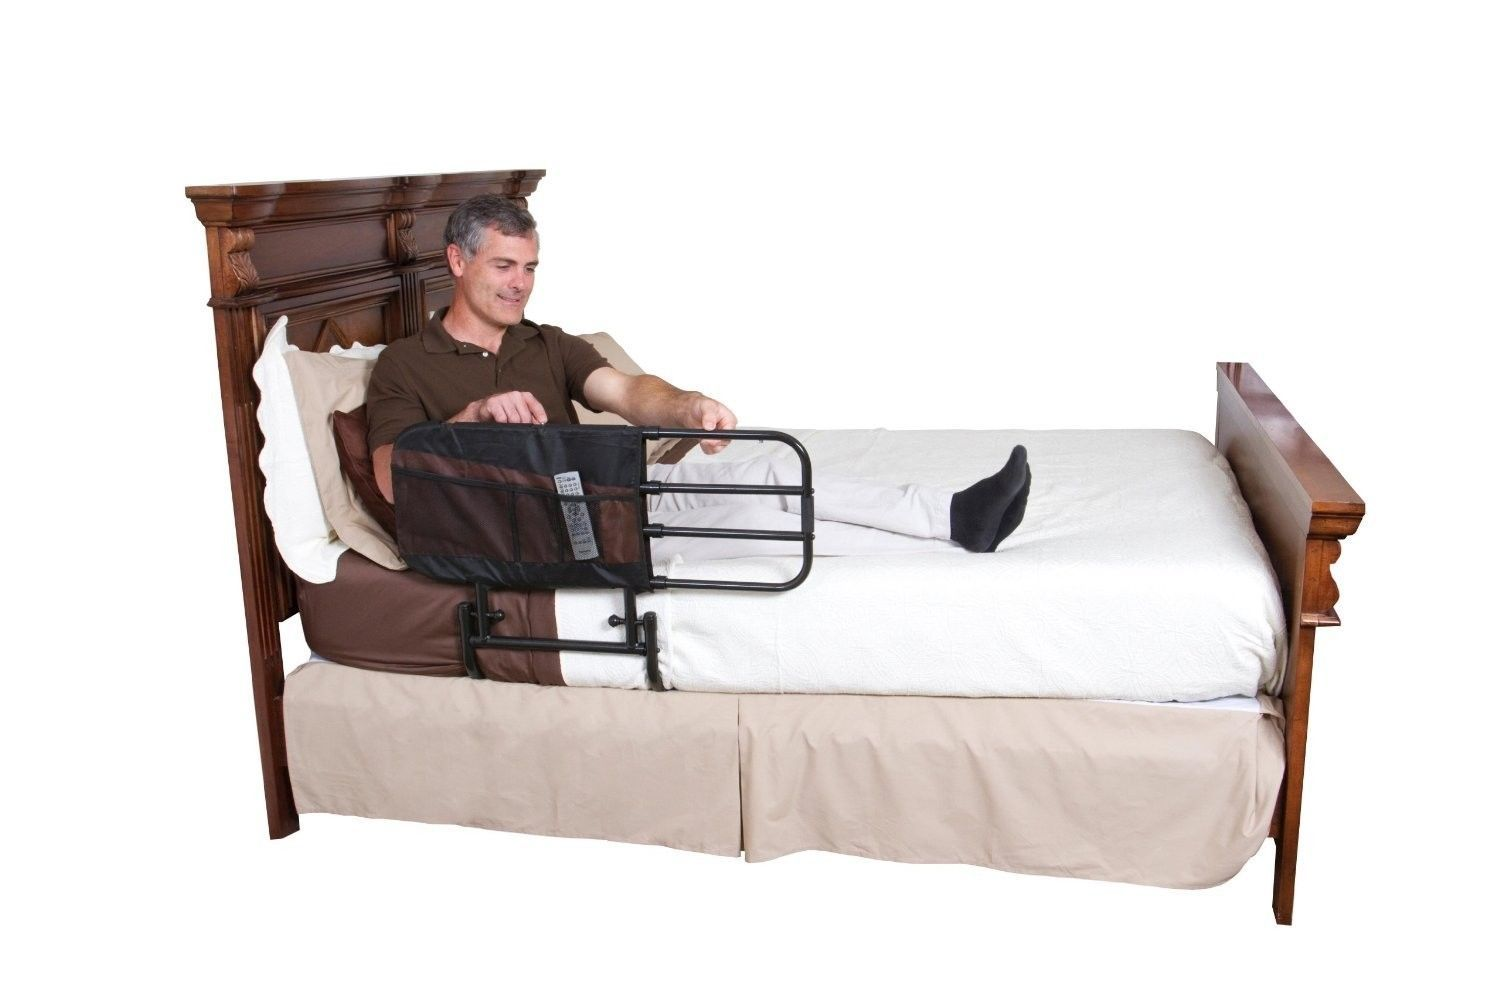 Adjustable hand rail bed assist safety ez folding medical mobility elderly gate other - Triangolo per alzarsi dal letto ...